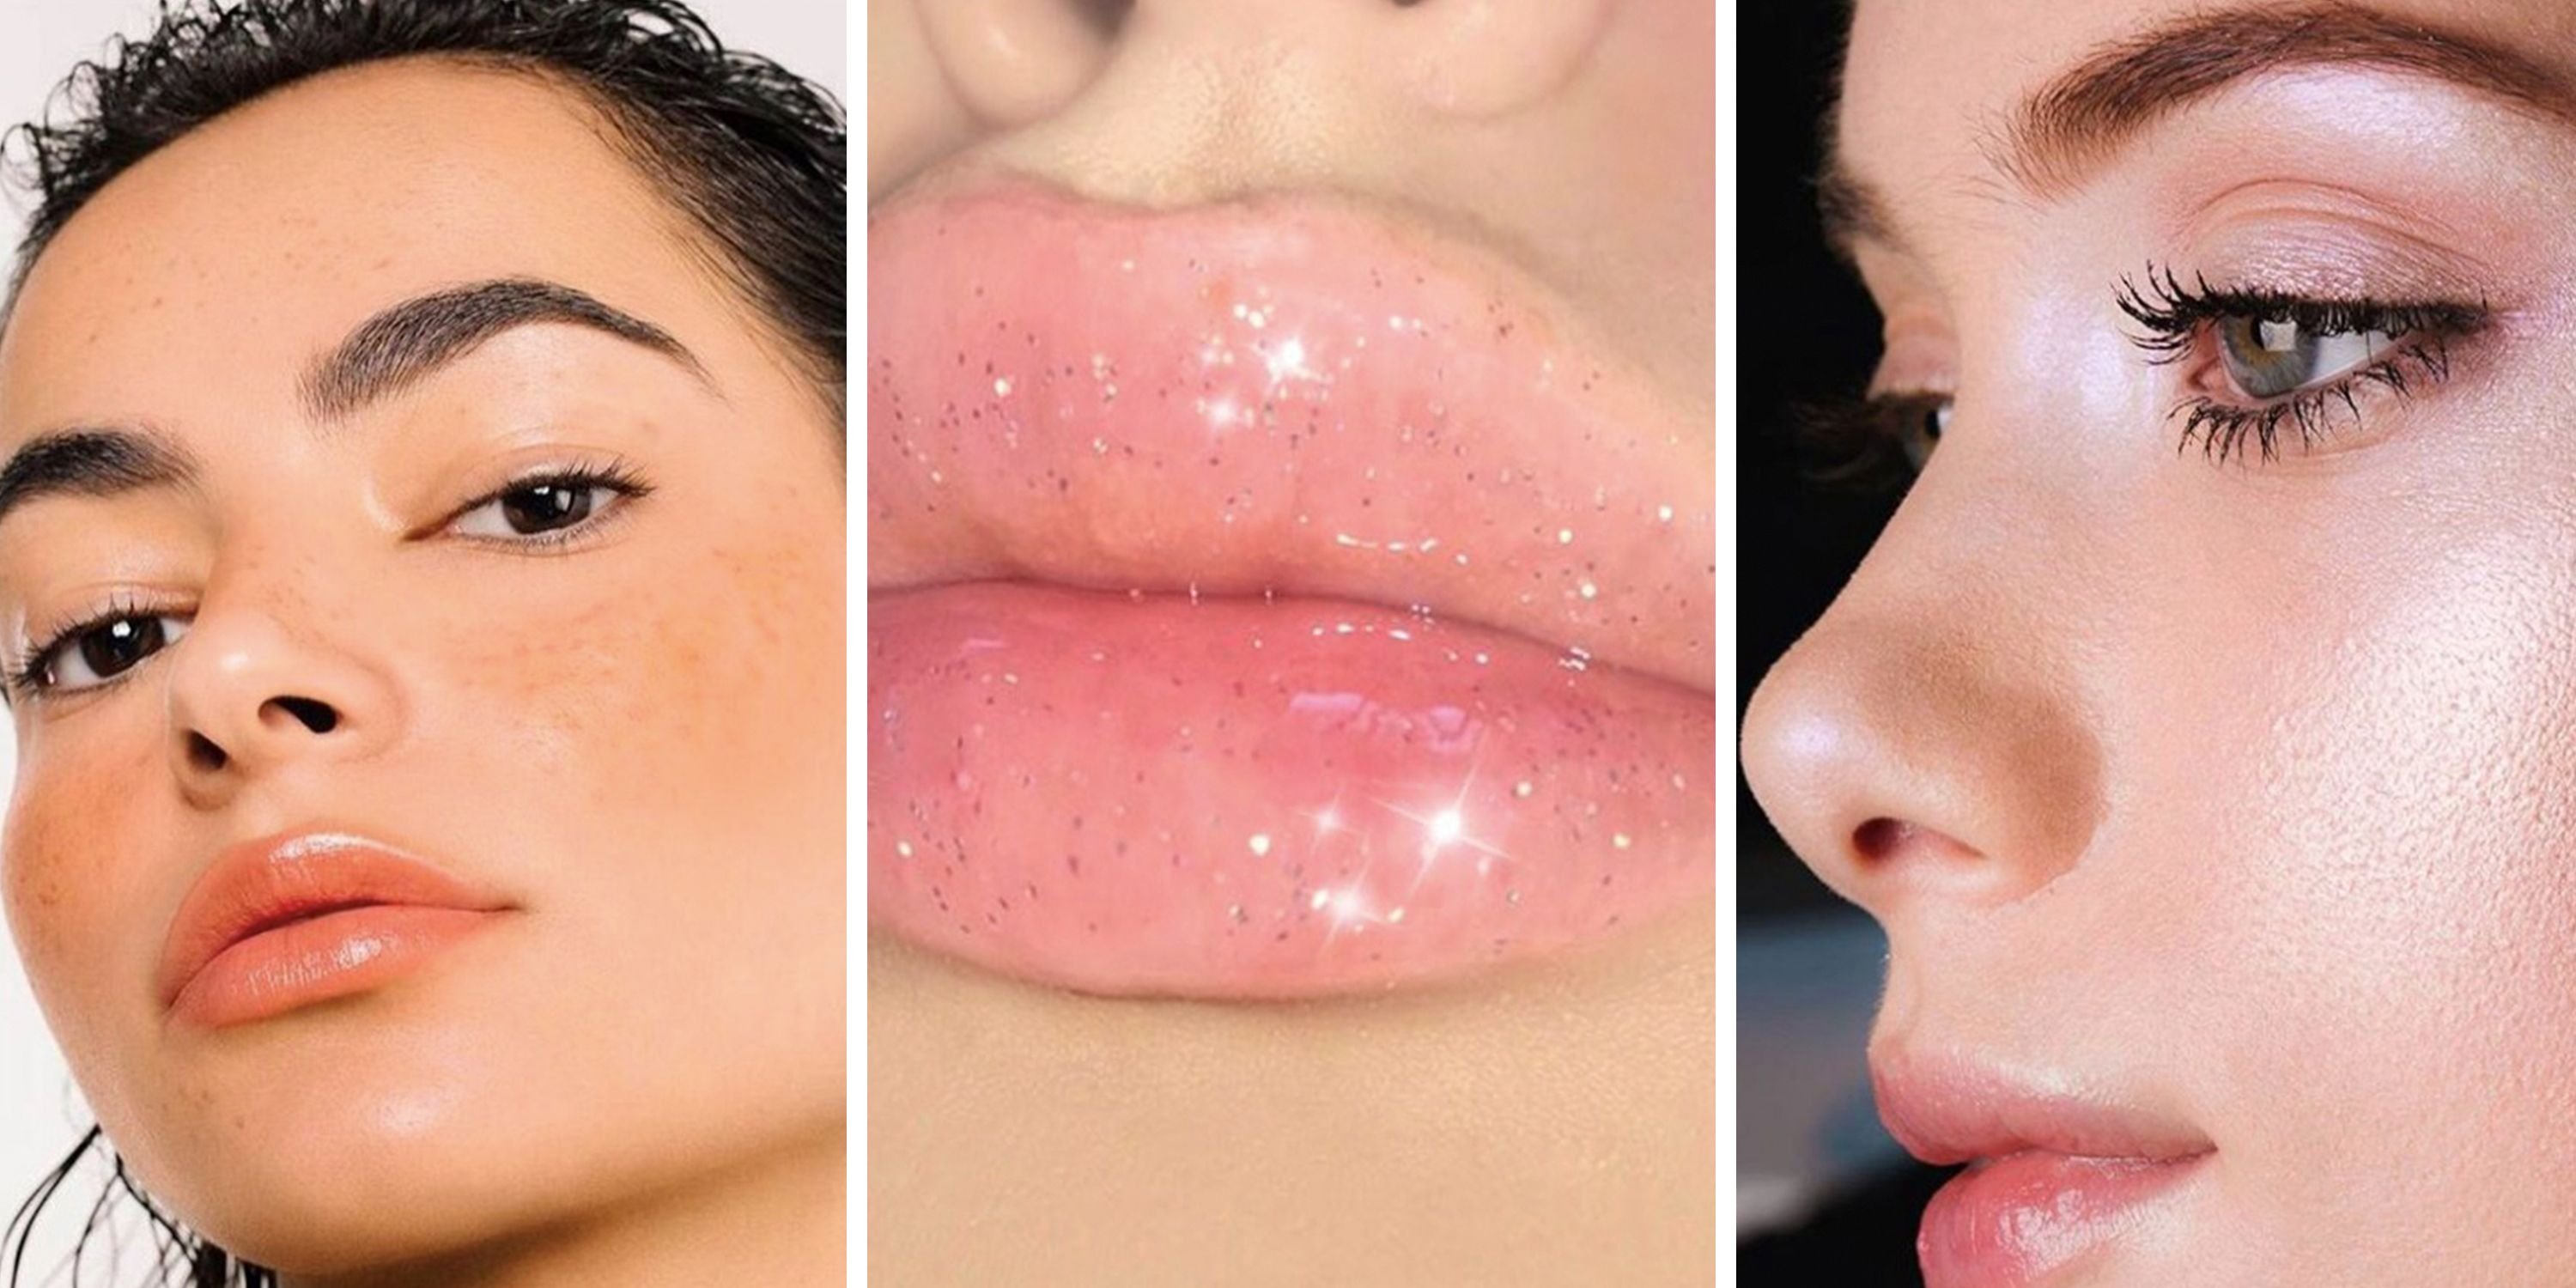 The 1 Makeup Trend We Predict Will Be Huge This Summer